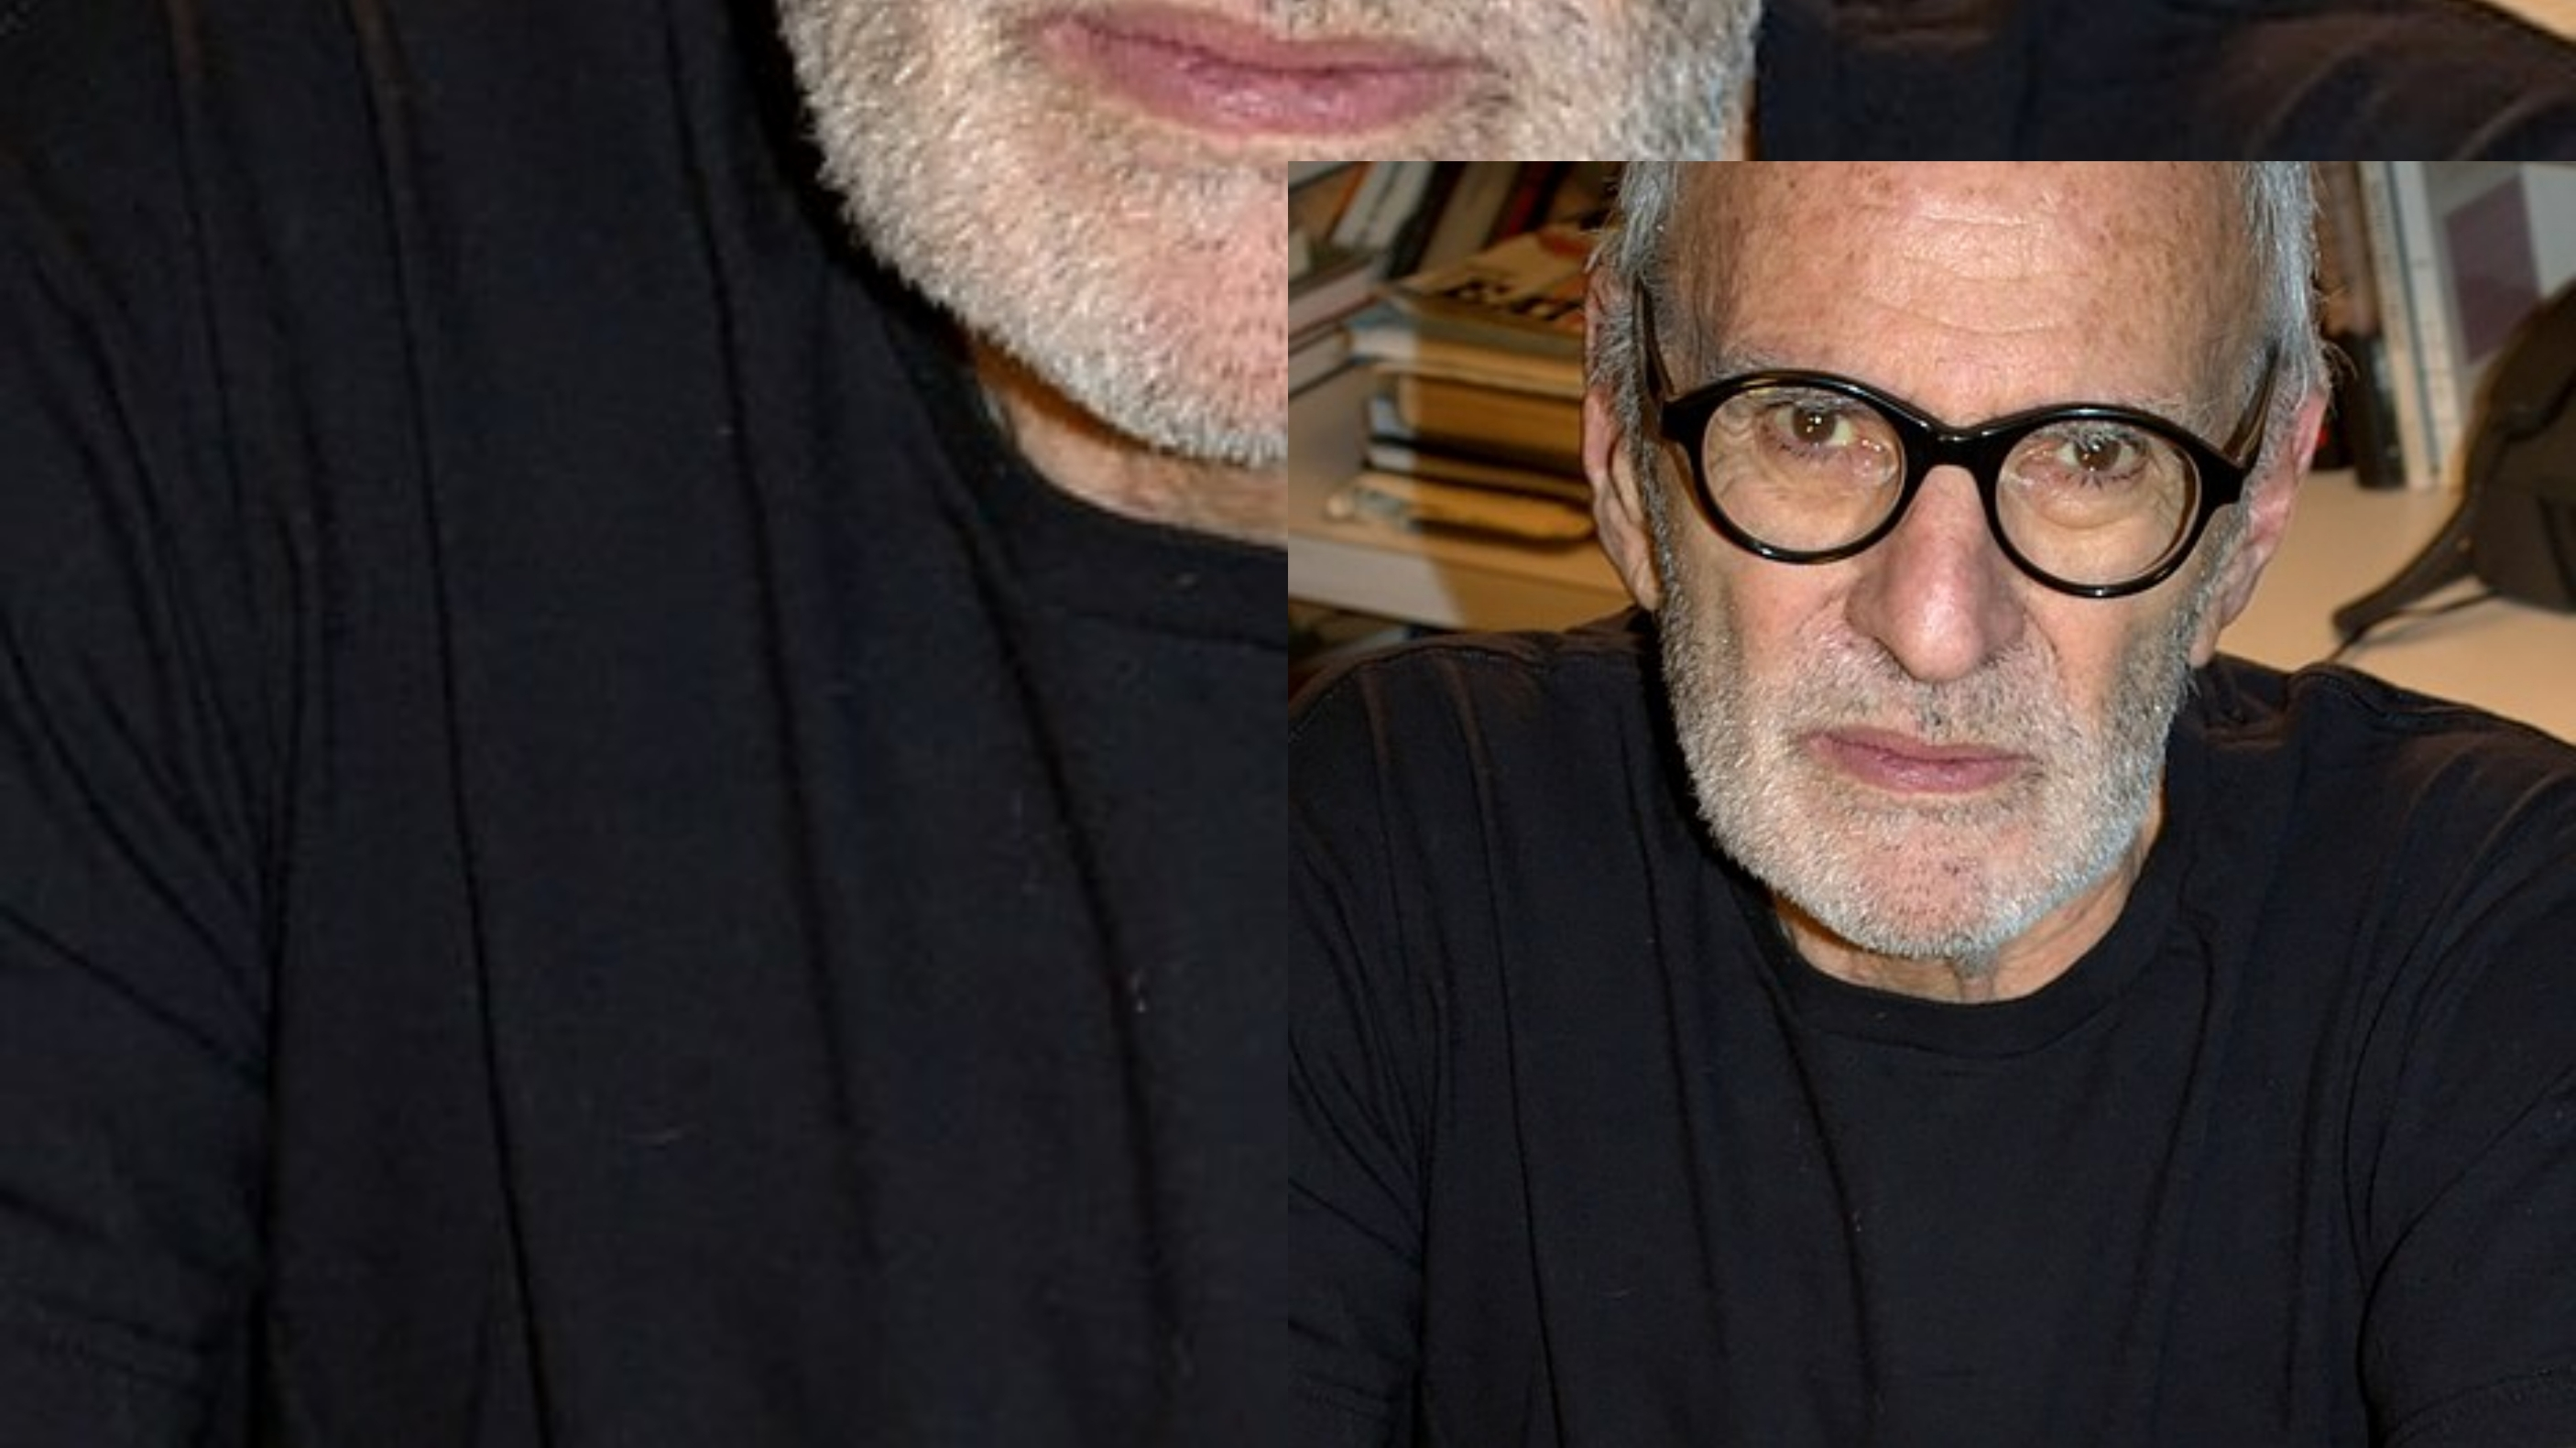 Larry Kramer (image published via Wikipedia)